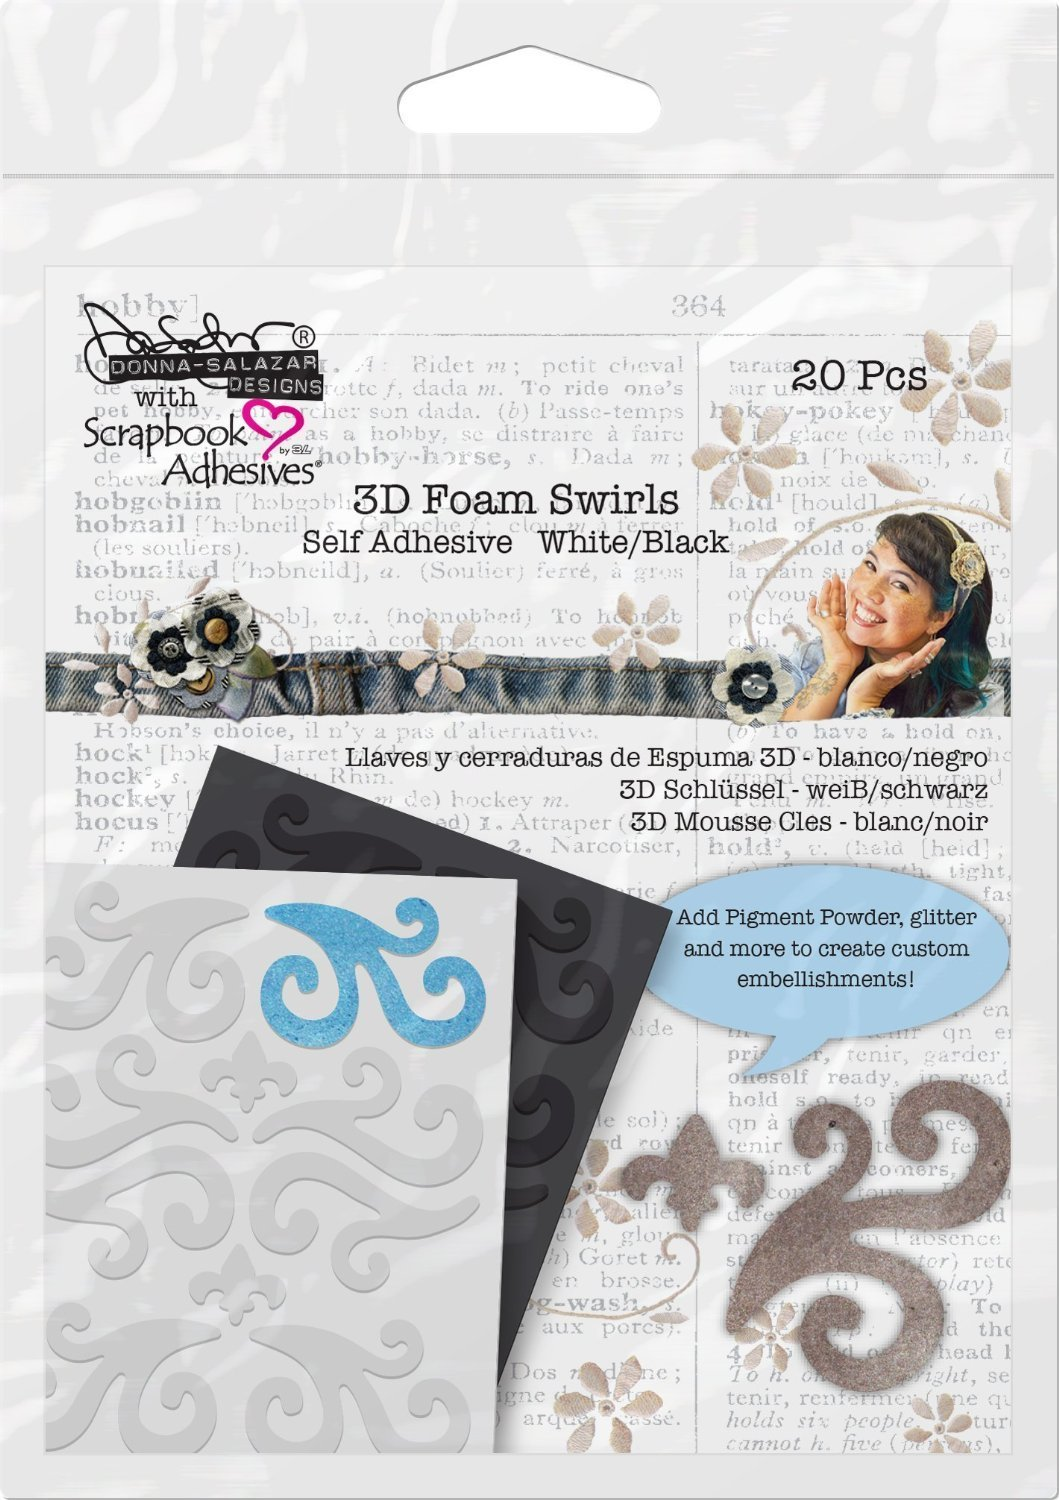 Amazon.com: SCRAPBOOK ADHESIVES BY 3L Mixed Media Art and Craft, Assorted Contents, Kit 2, 12-Piece: Arts, Crafts & Sewing